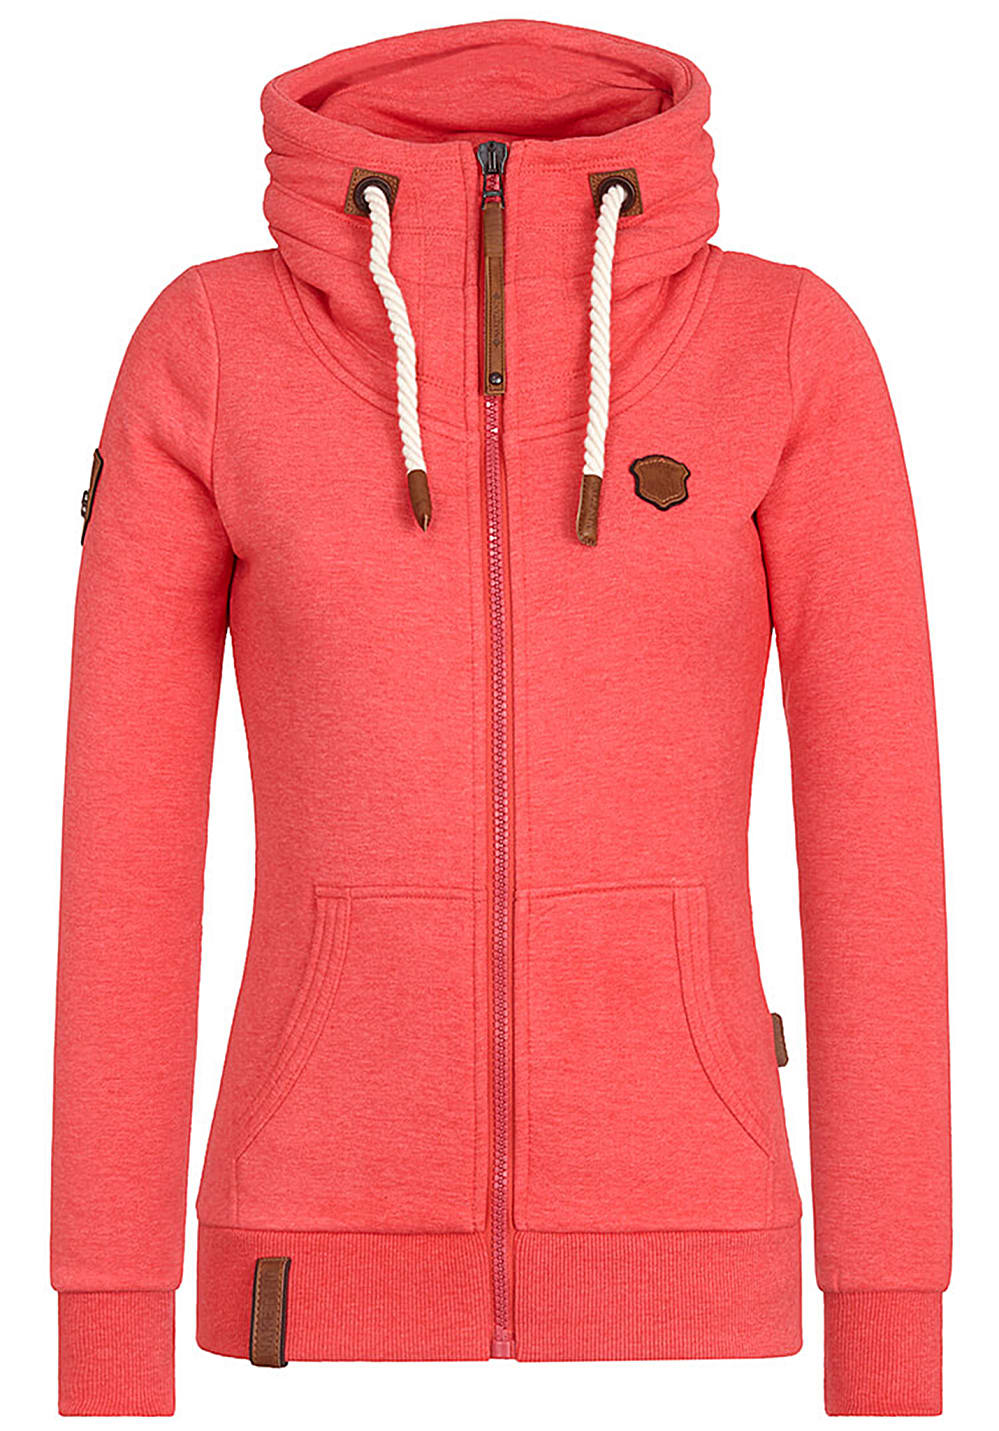 NAKETANO Monsterbumserin Pimped Sweat Jacket for Women Red